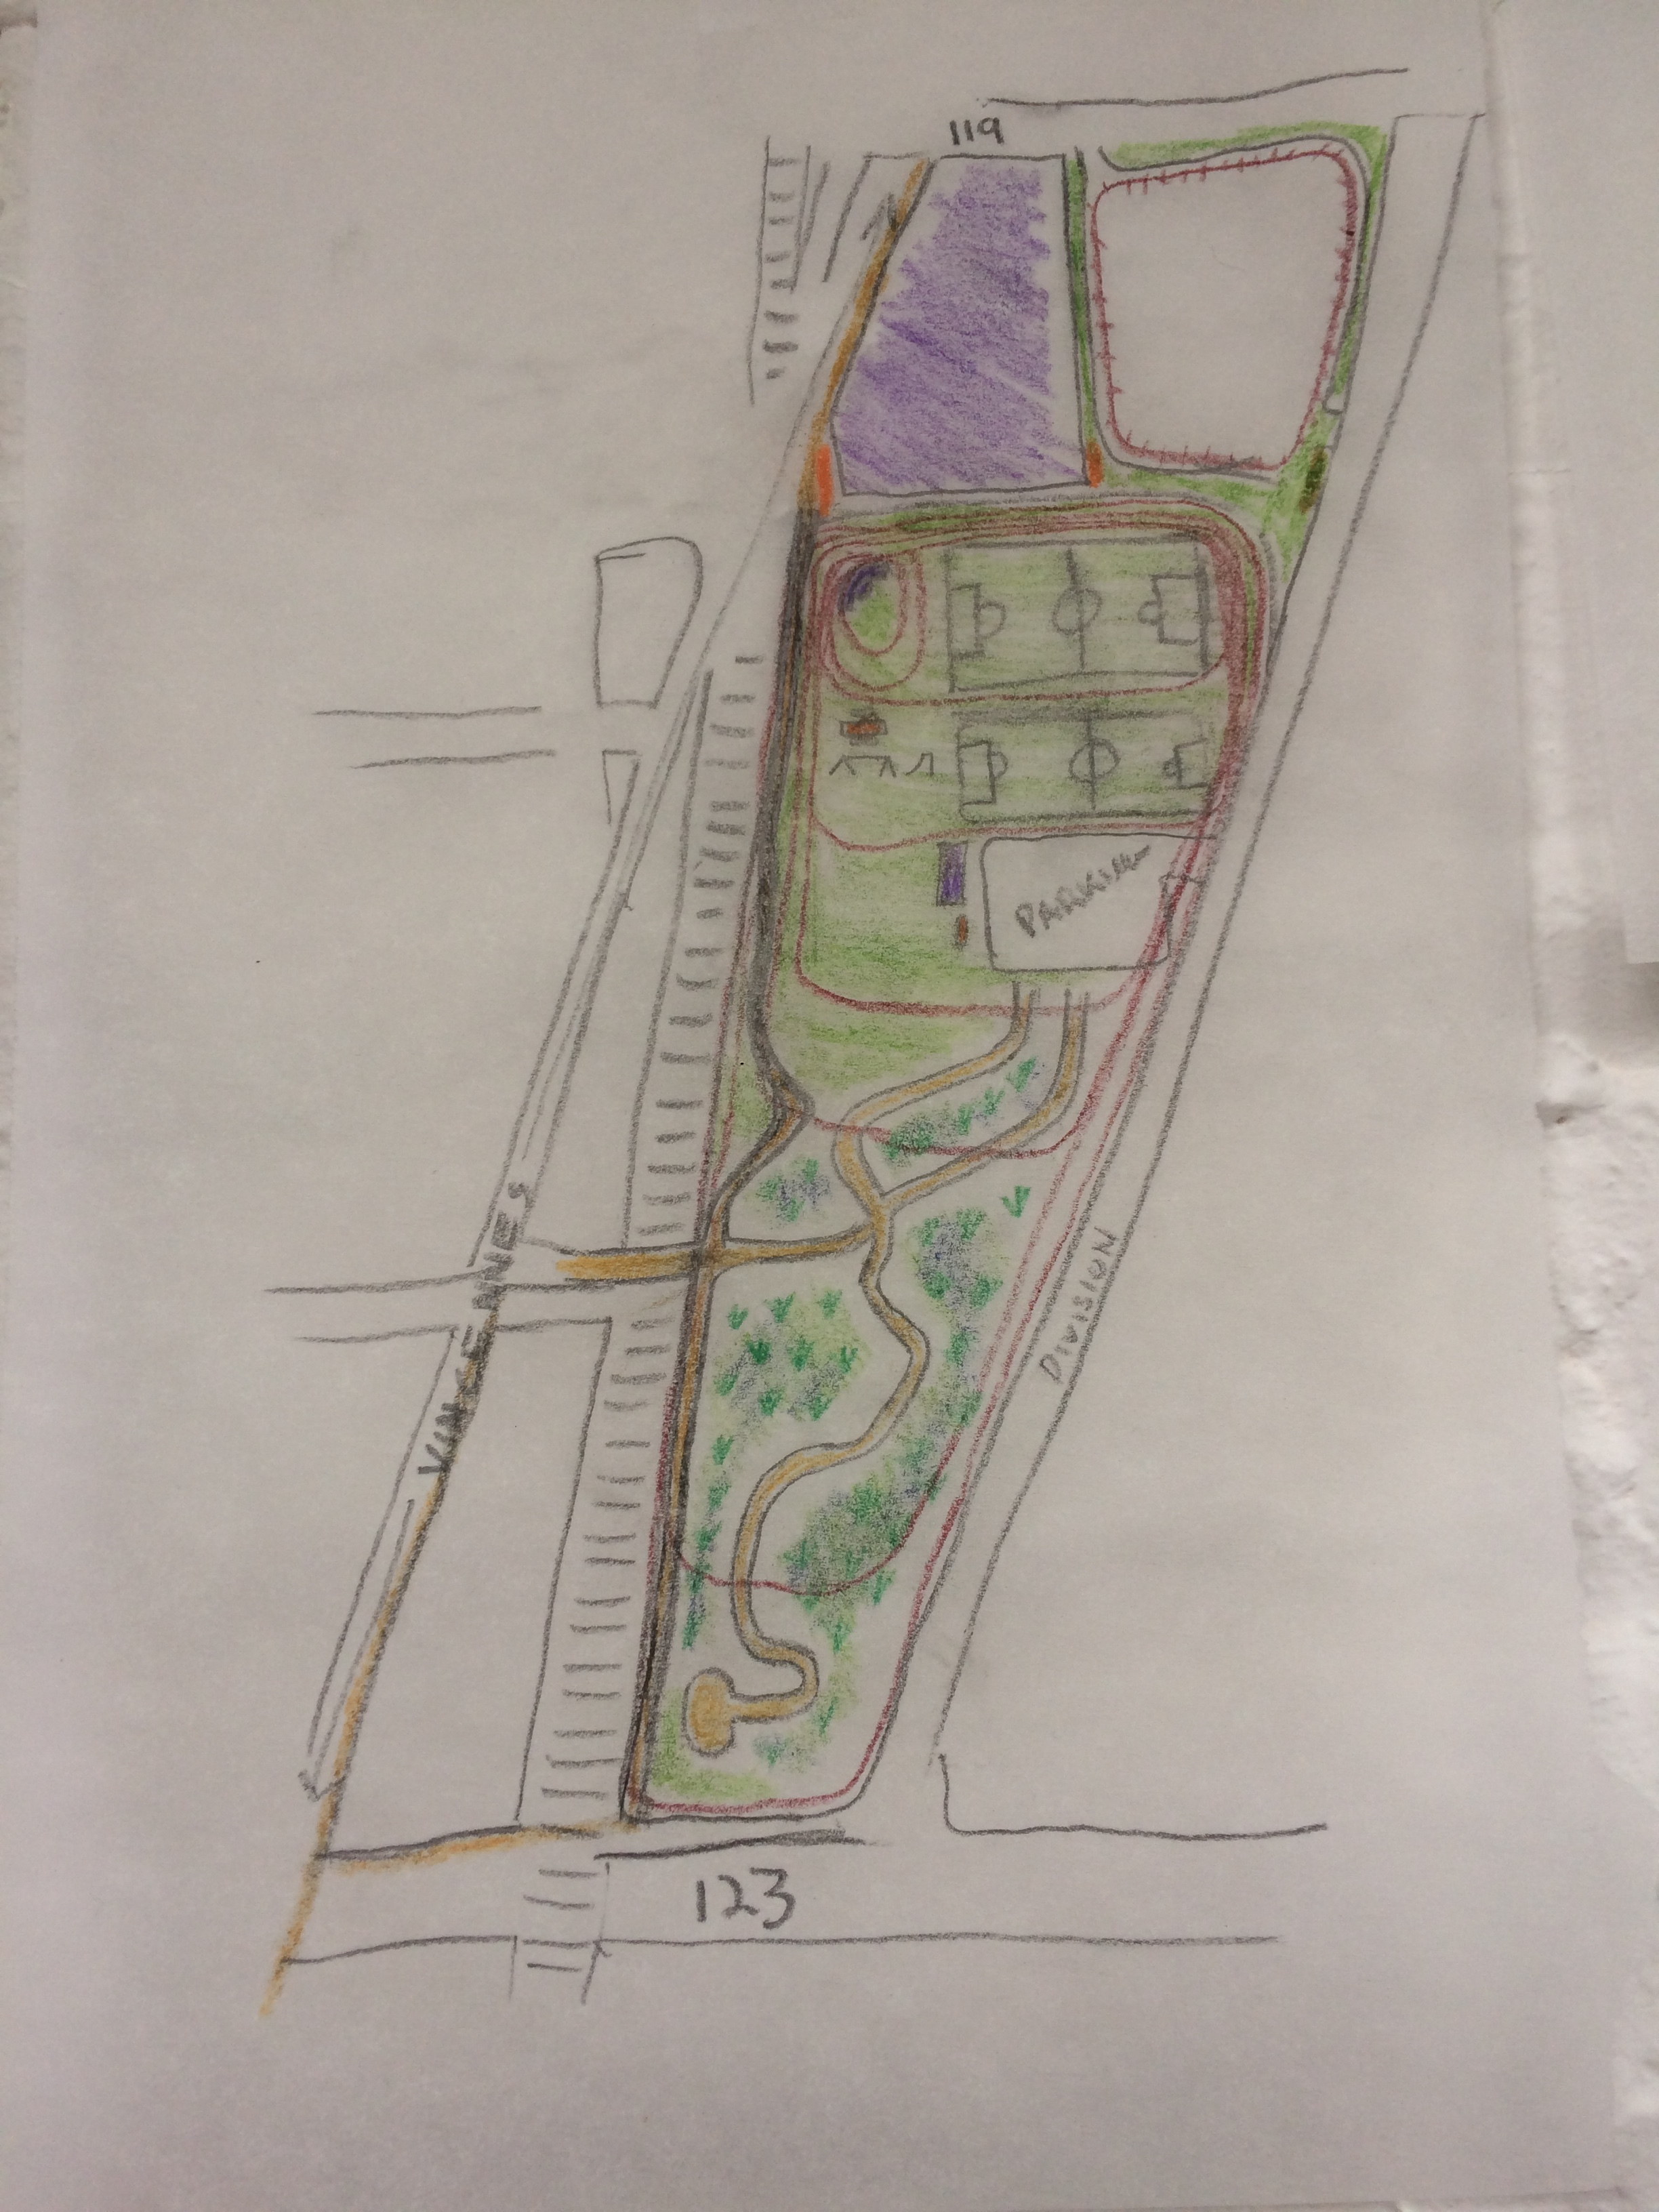 The site plan proposed. Drawn by writer.